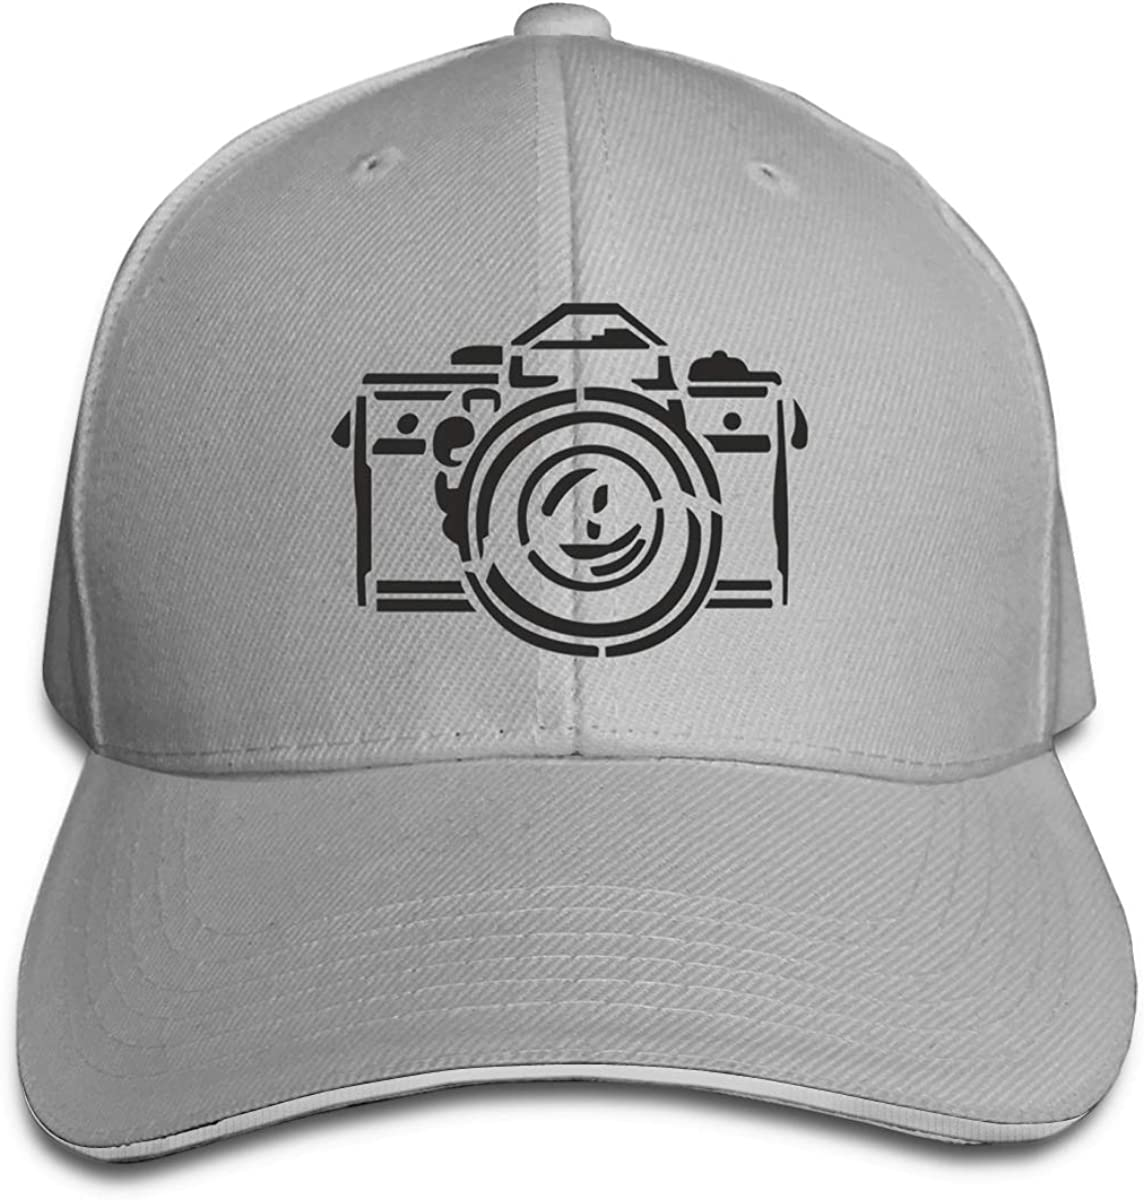 Photography Camera Classic Adjustable Cotton Baseball Caps Trucker Driver Hat Outdoor Cap Gray